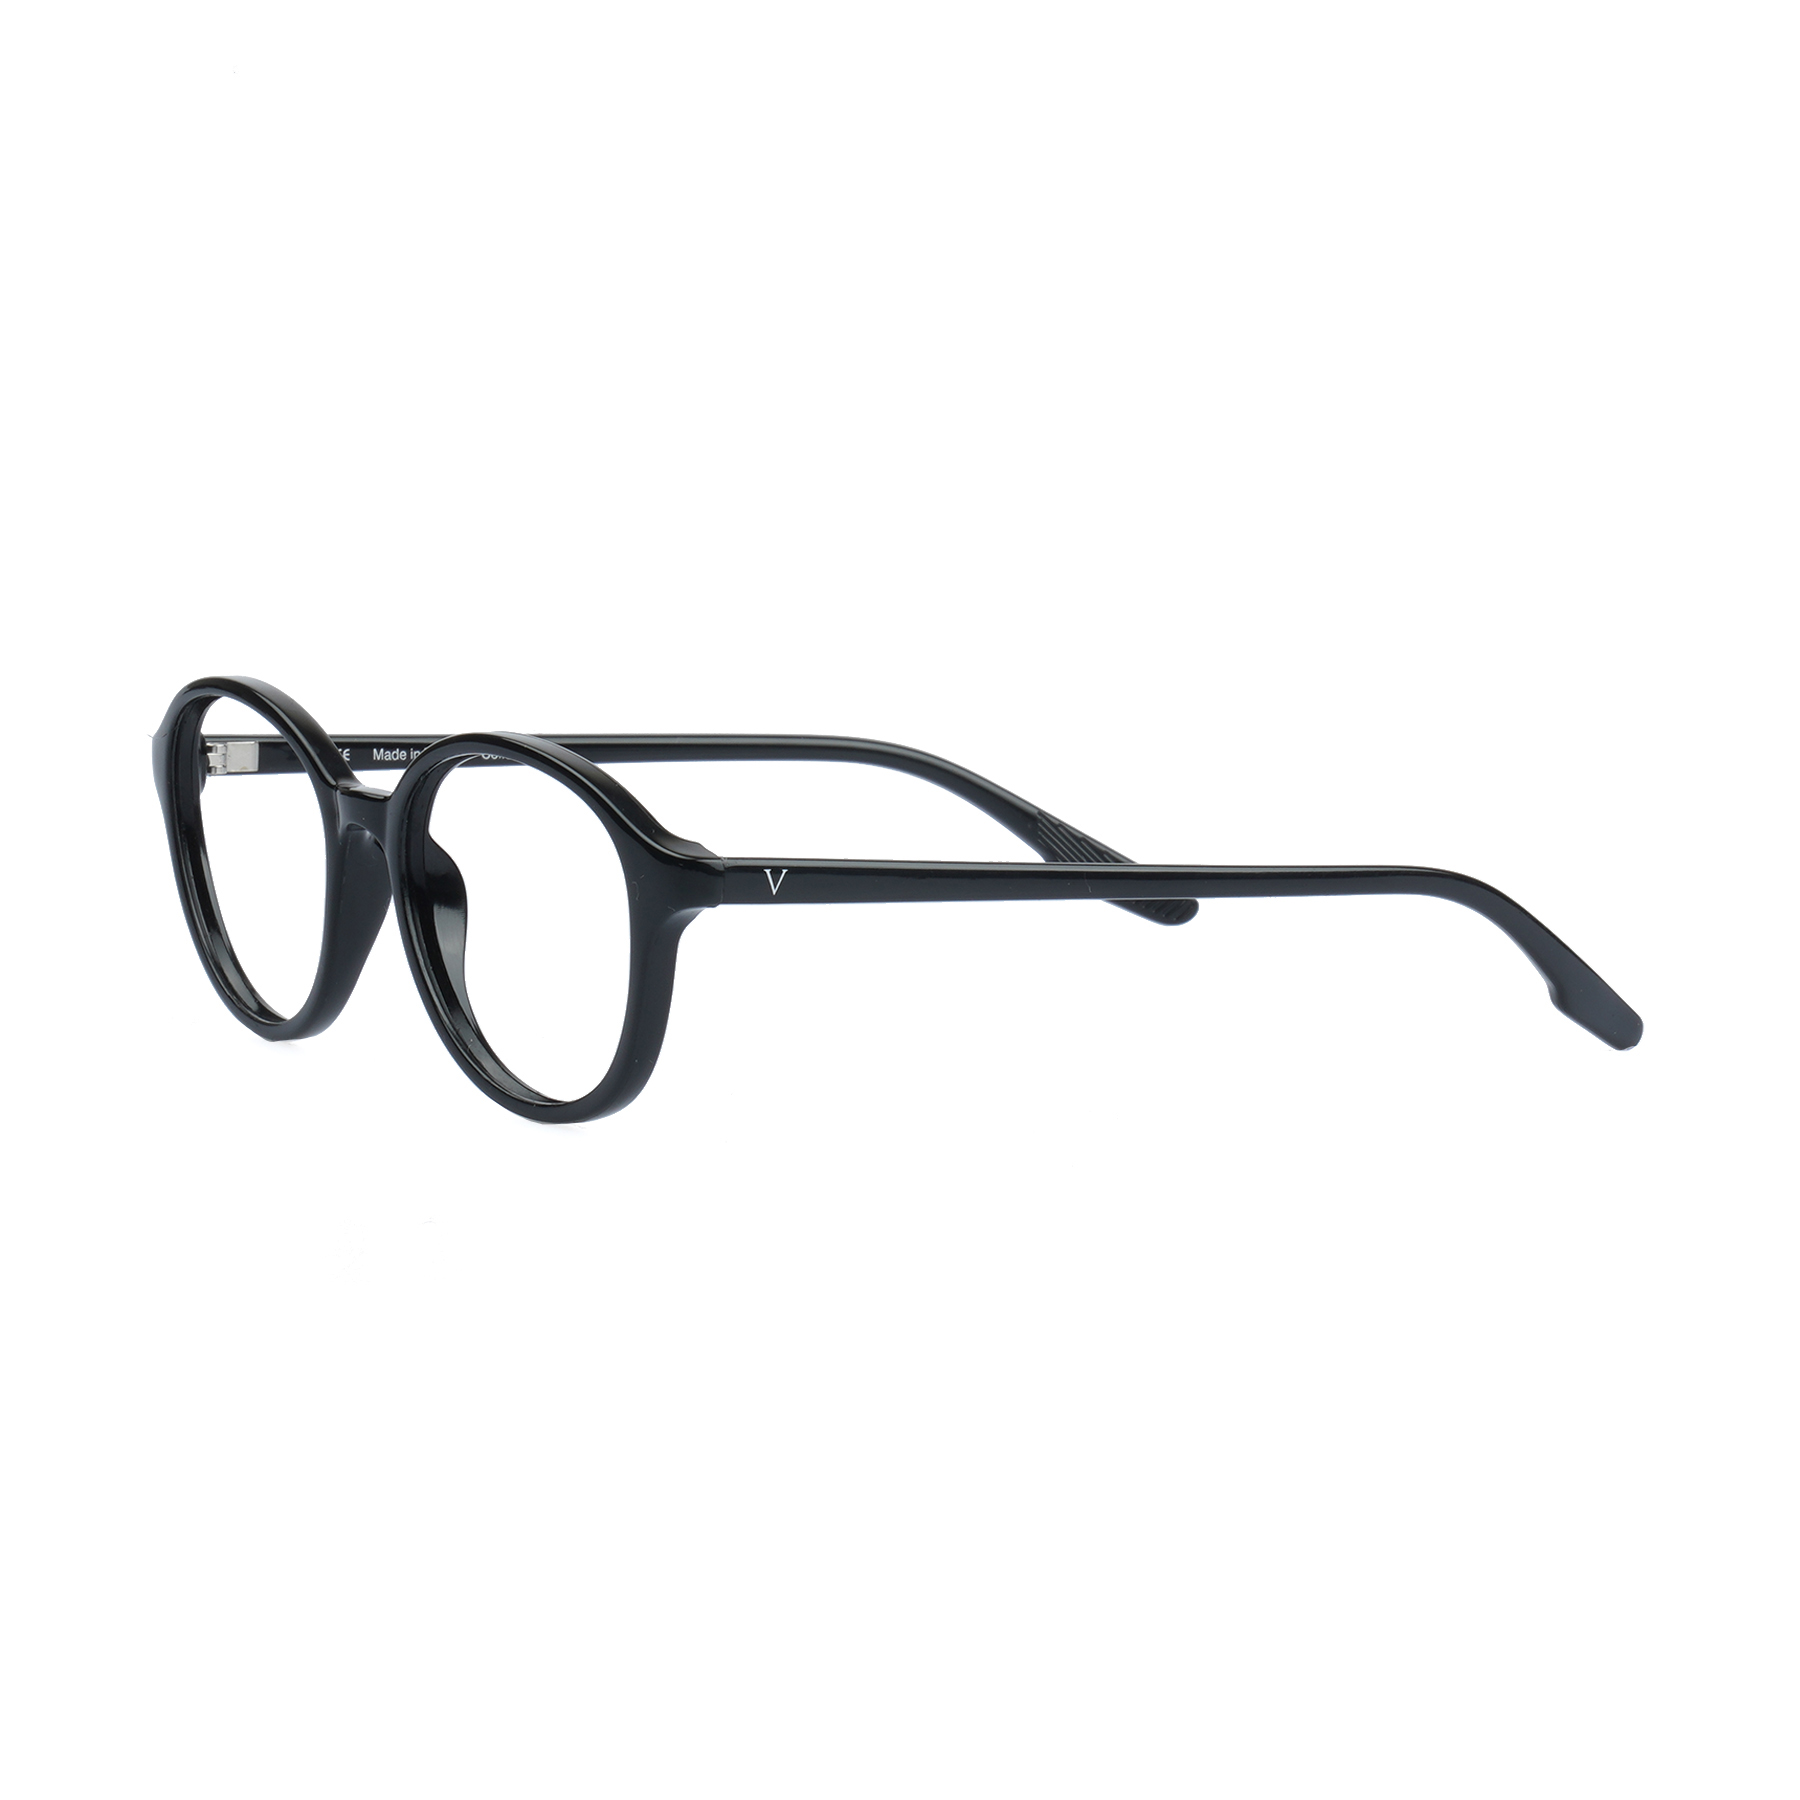 Vinaldi 2052 Optical Frames